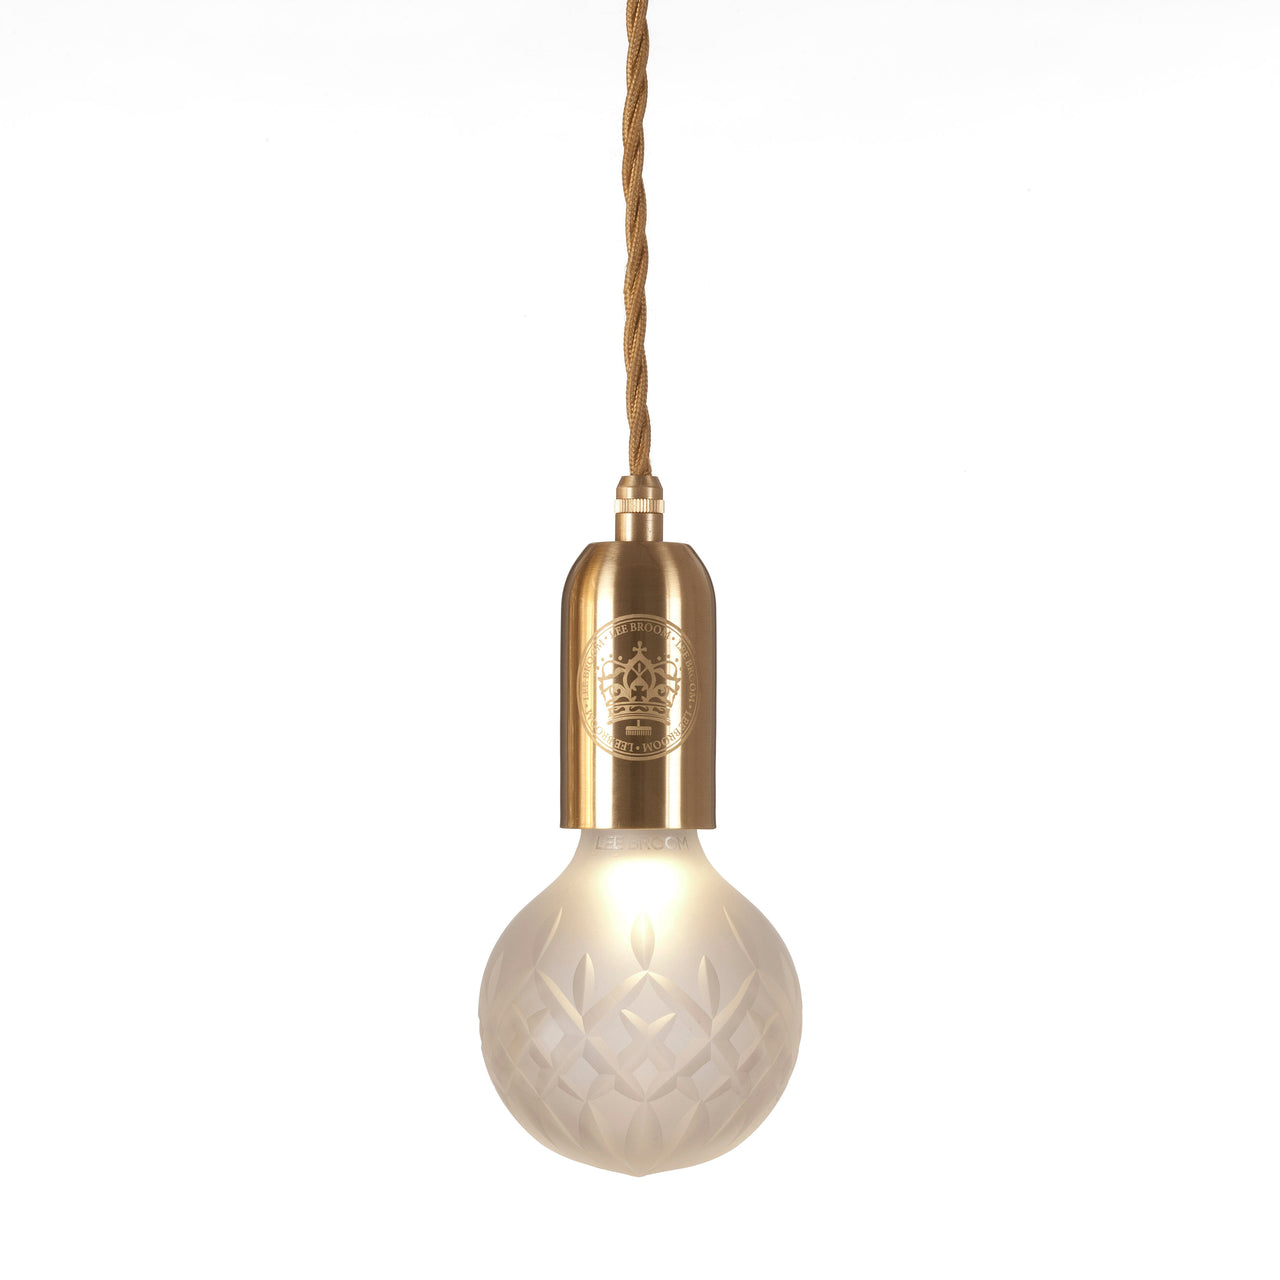 Crystal Bulb + Pendant: Bulb + Brushed Brass Fitting+ Frosted Crystal